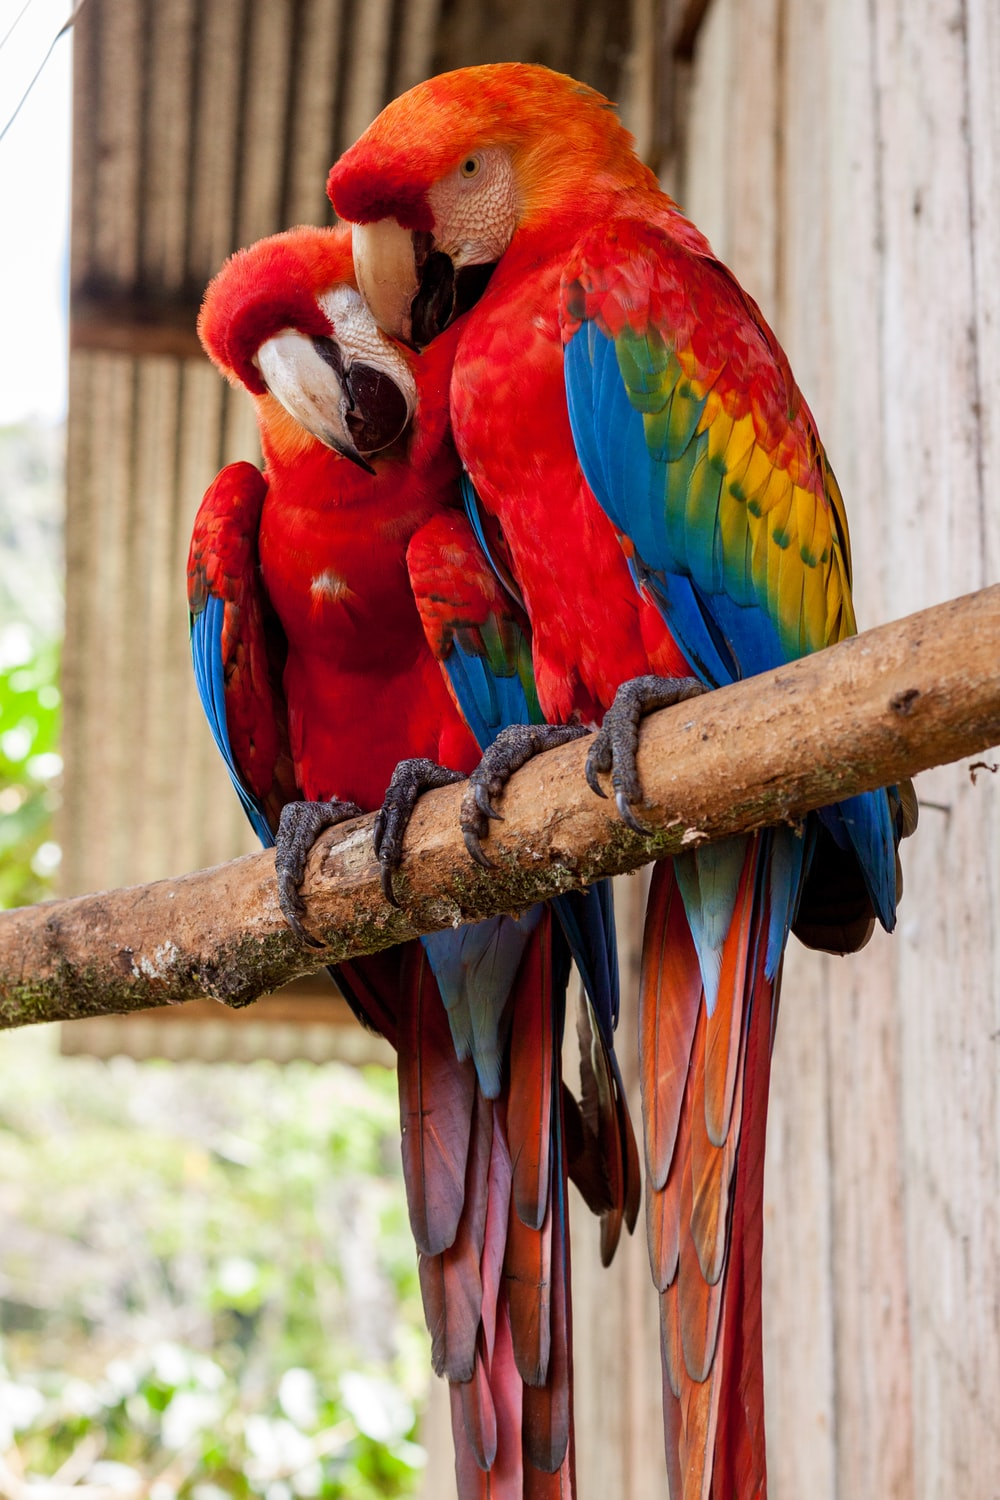 two red parrots on stick